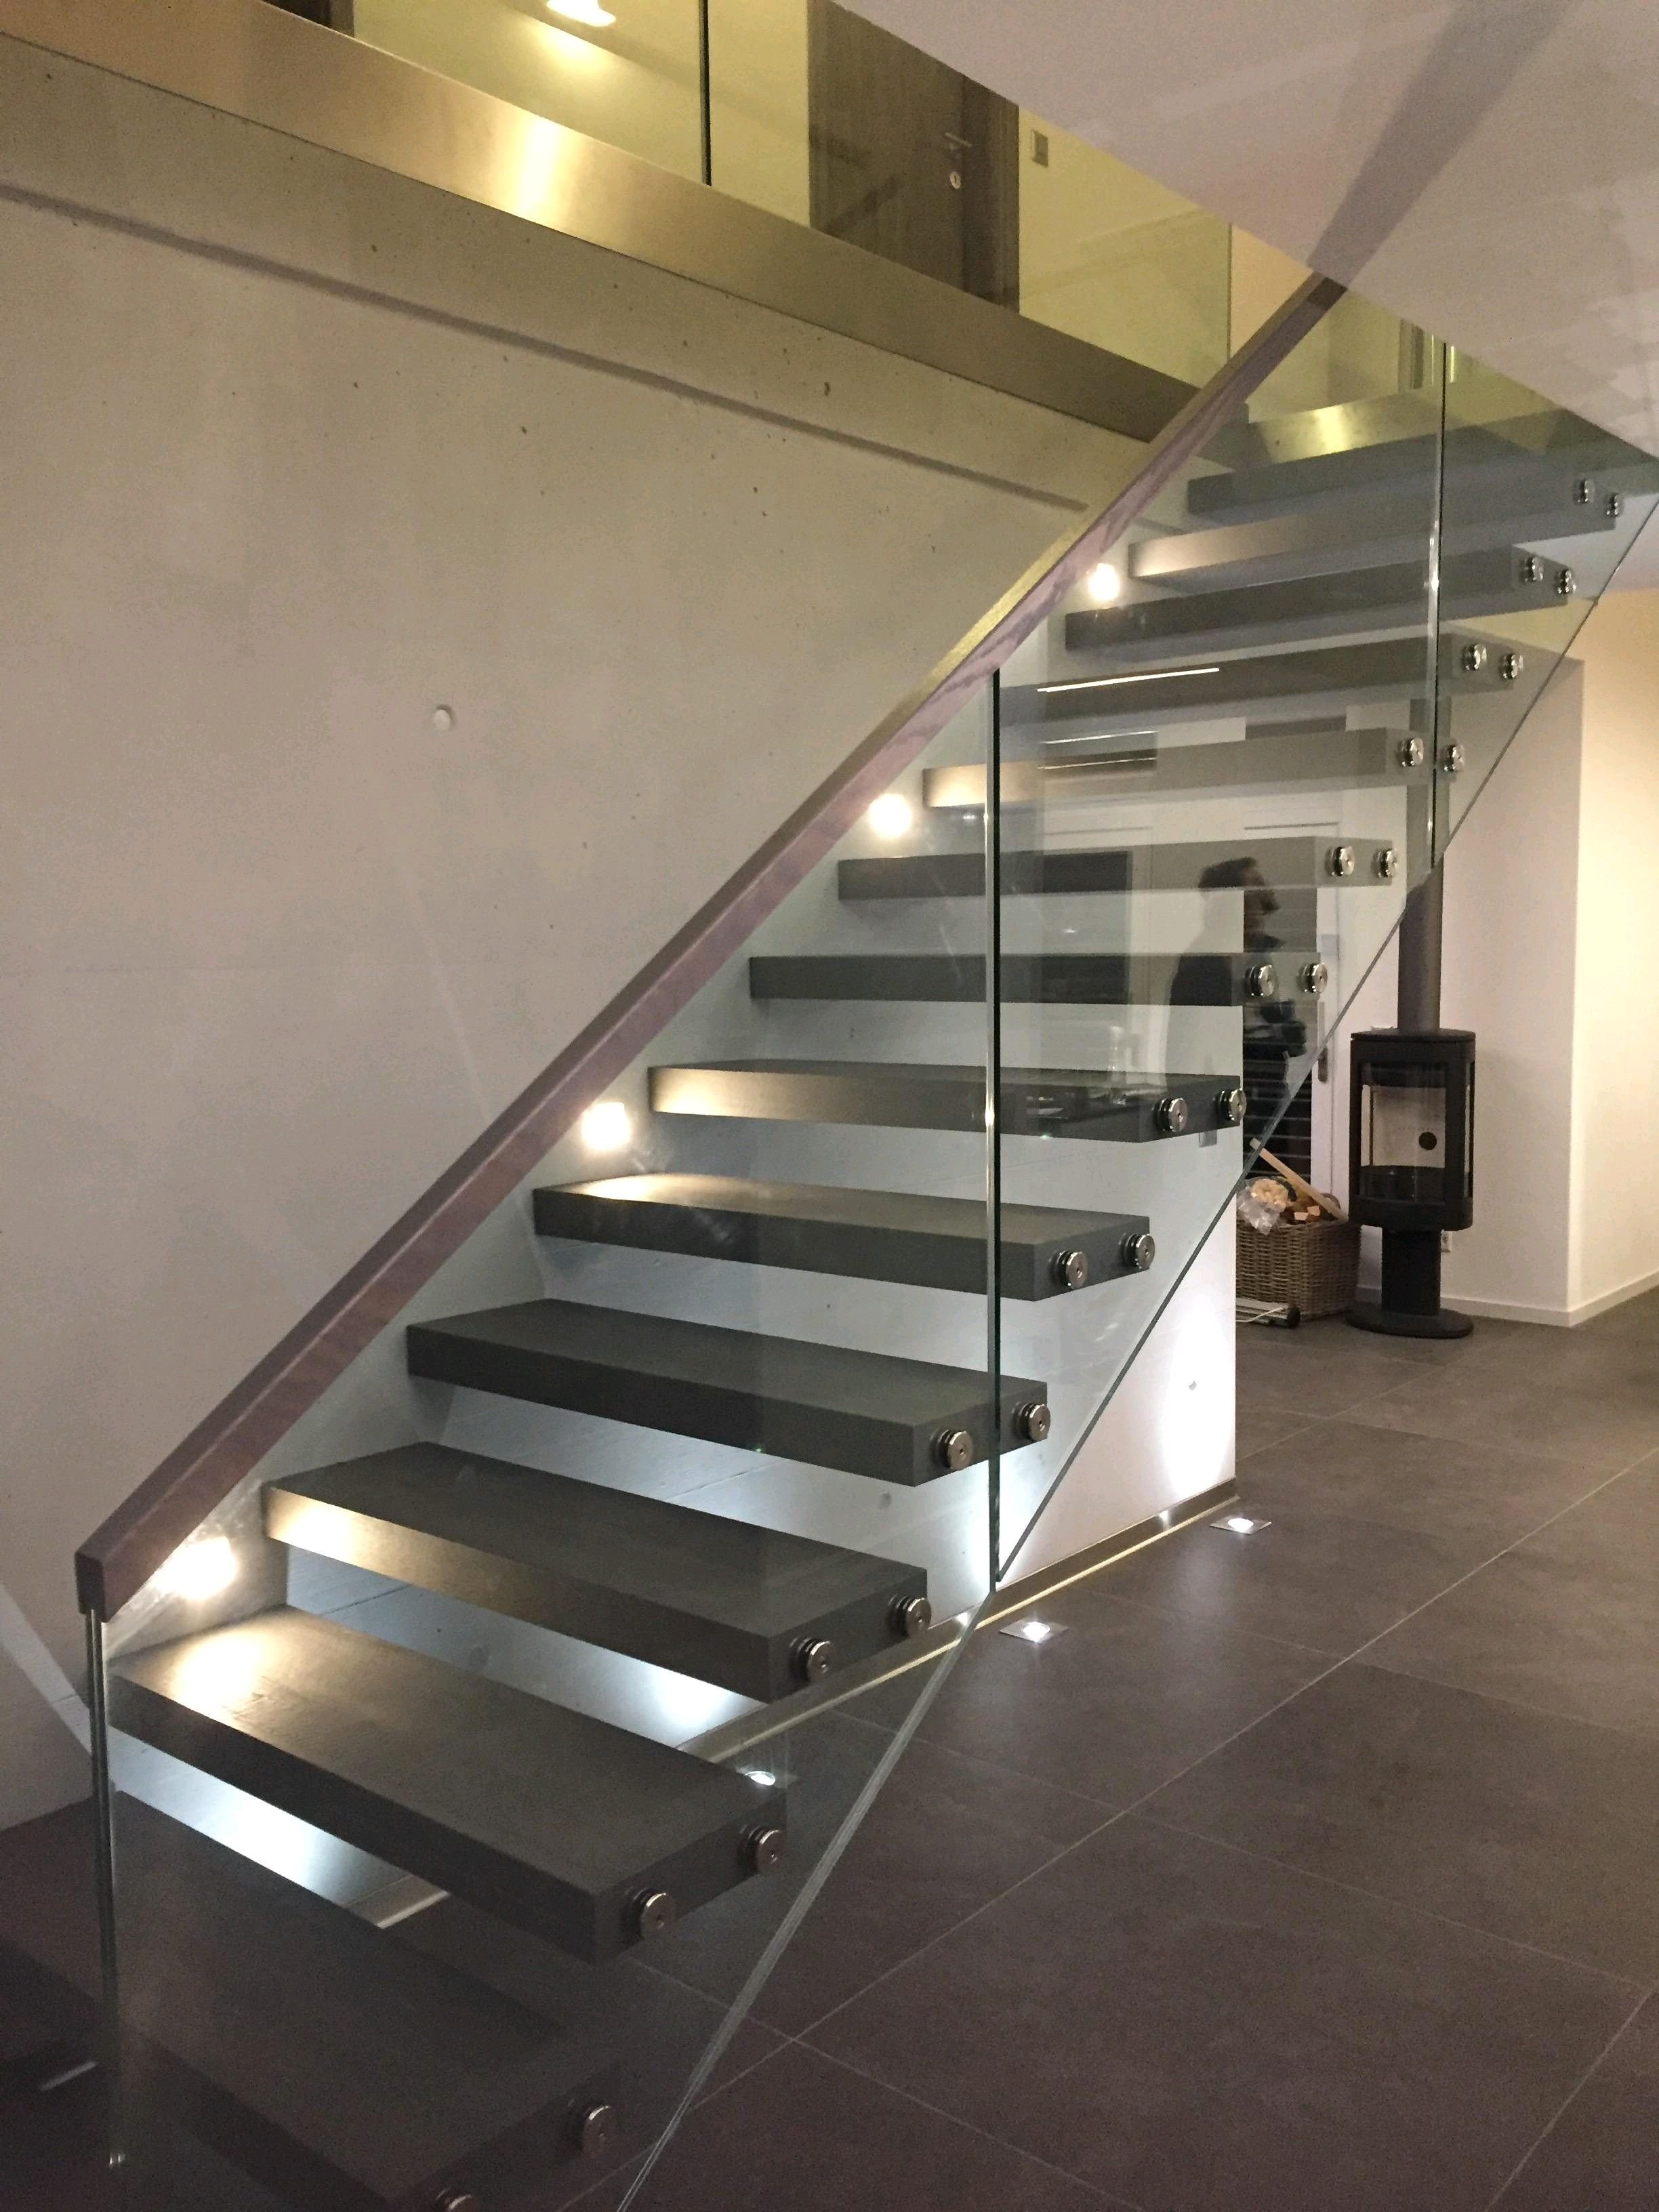 Floating Staircase Floating Stairs Demax Arch Staircase Design | Floating Stairs With Glass Railing | Duplex Balcony | Combination Glass | Glass Balustrade | Crystal Handrail | Innovative Glass